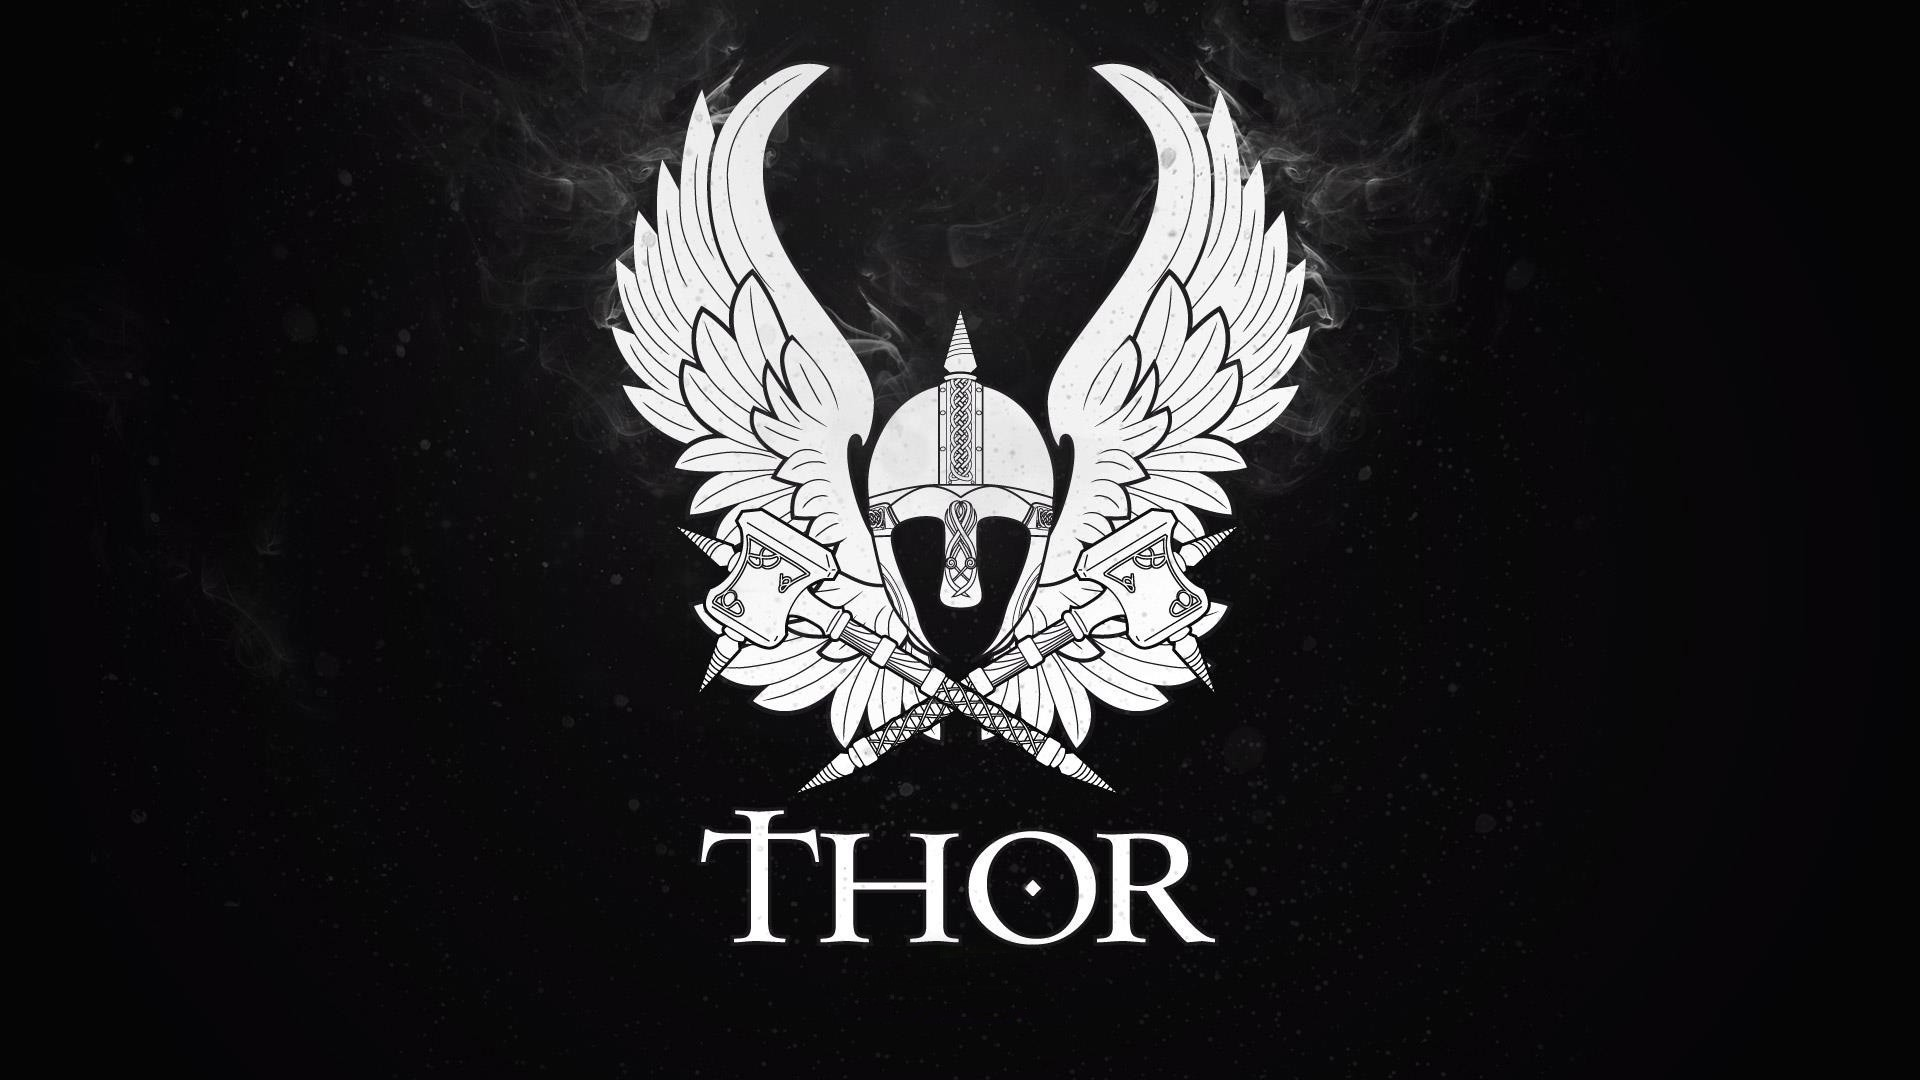 Thor Pictures Free Wallpaper